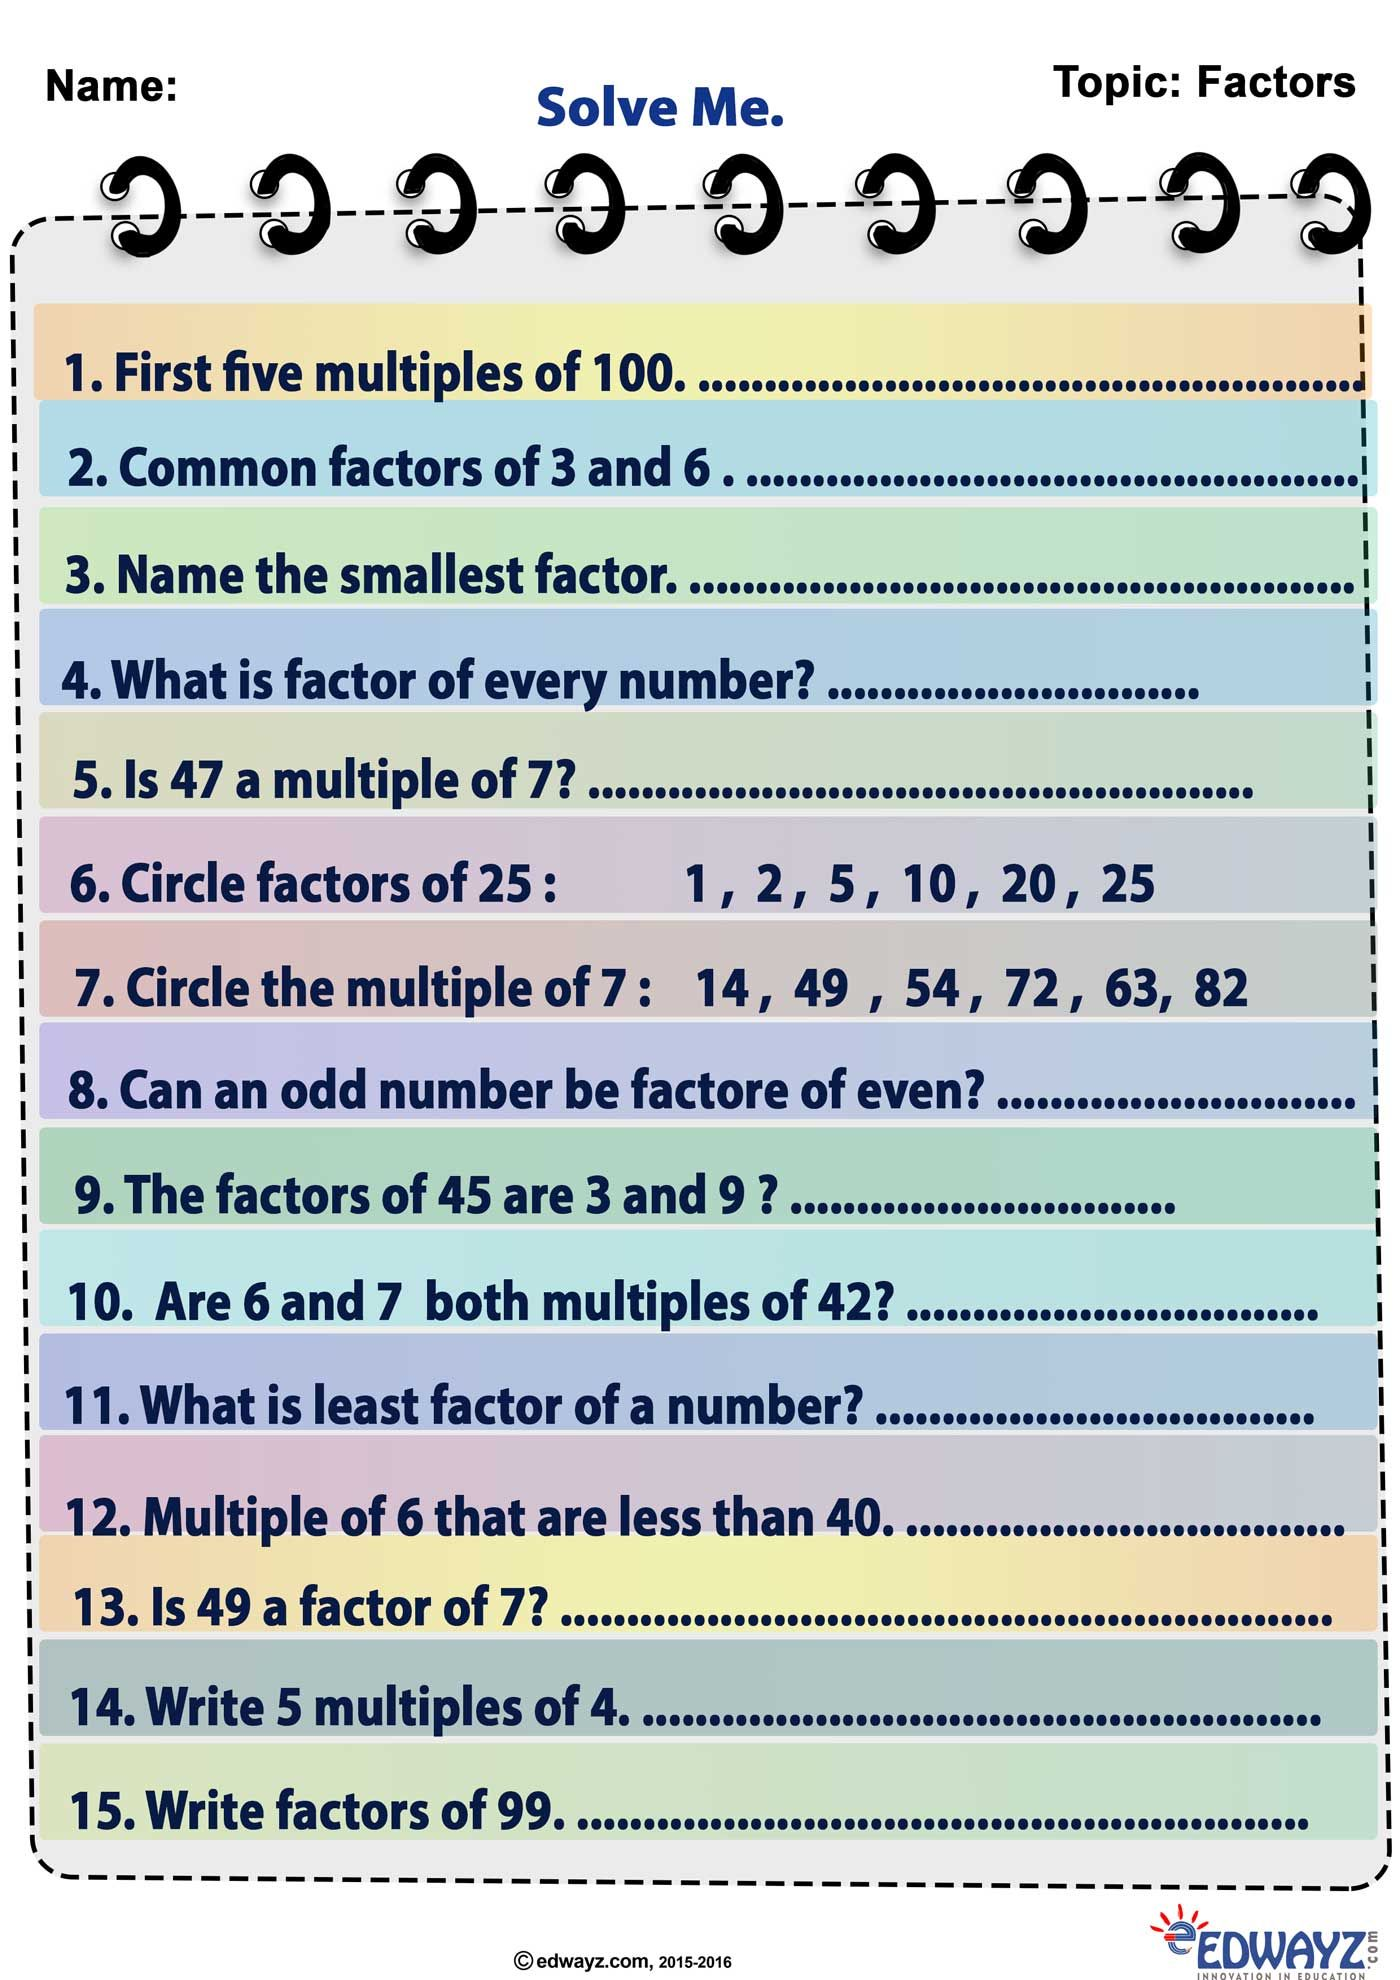 Worksheets_Class 5_Factors   Mental maths worksheets [ 1980 x 1400 Pixel ]